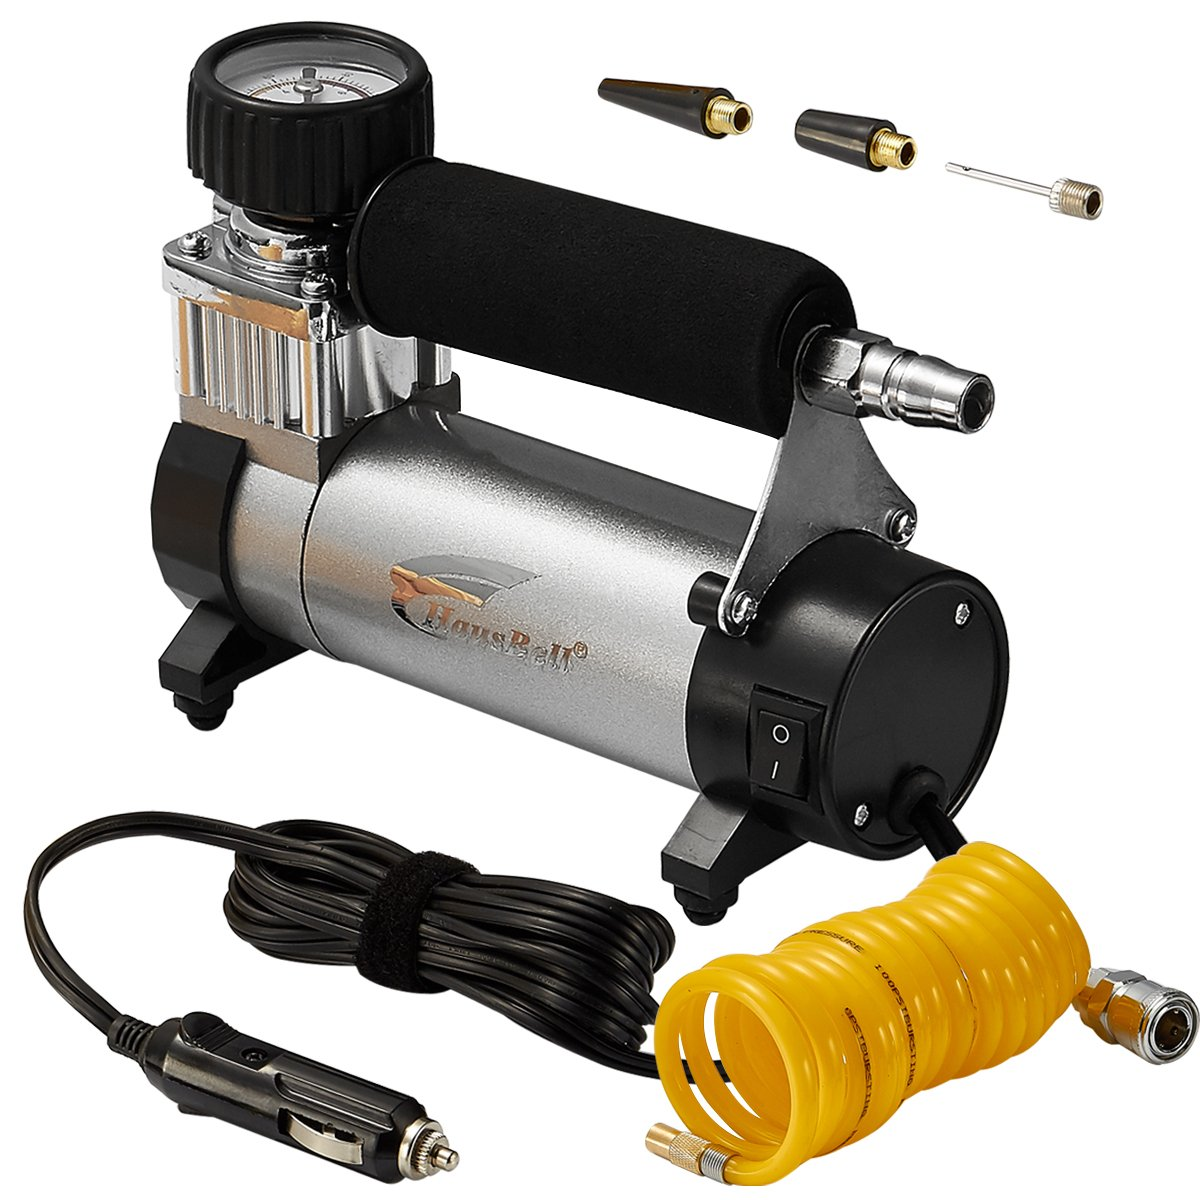 Hausbell Air Compressor Kit Mini DC12V Multi-Use Oil-Free Air Tools Tire Inflator FBA/_Hausbell 3035 Portable Air Compressor